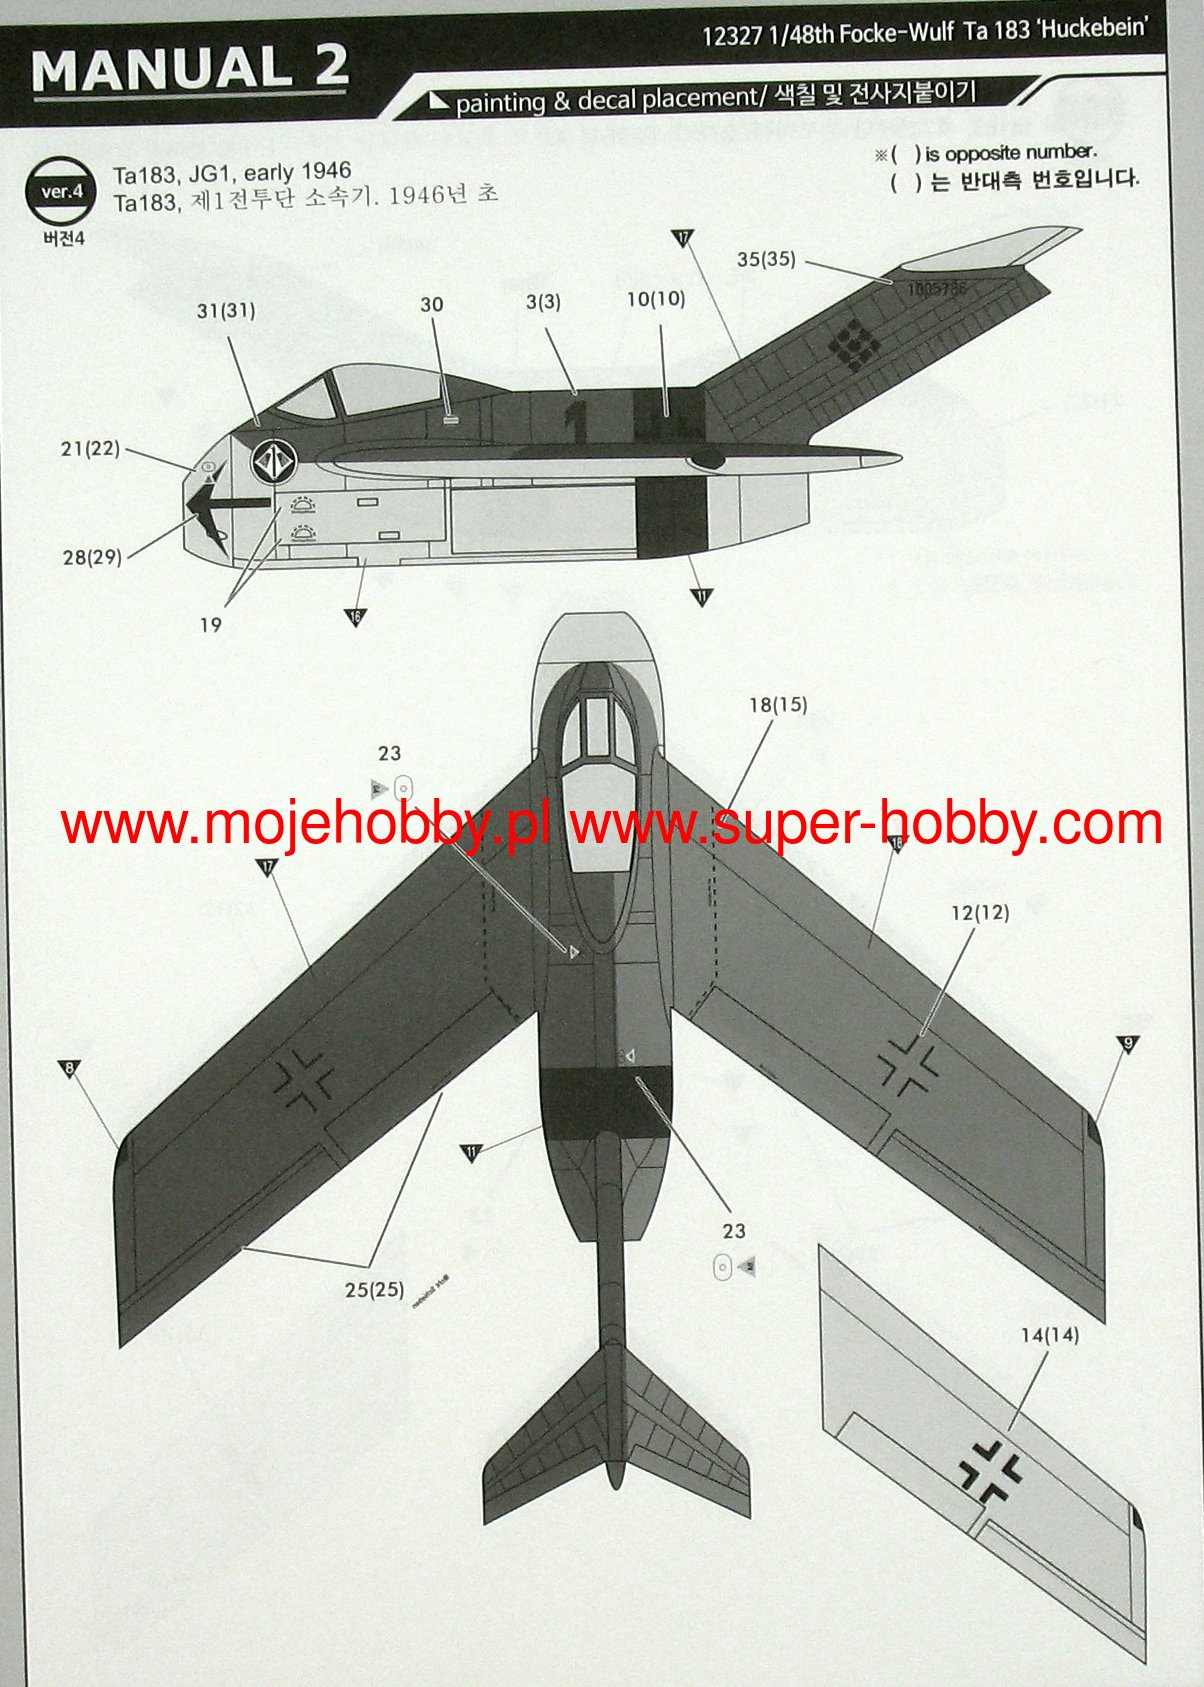 Models by Marek Focke Wulf Ta-183 - German prototype of a World War II jet fighter